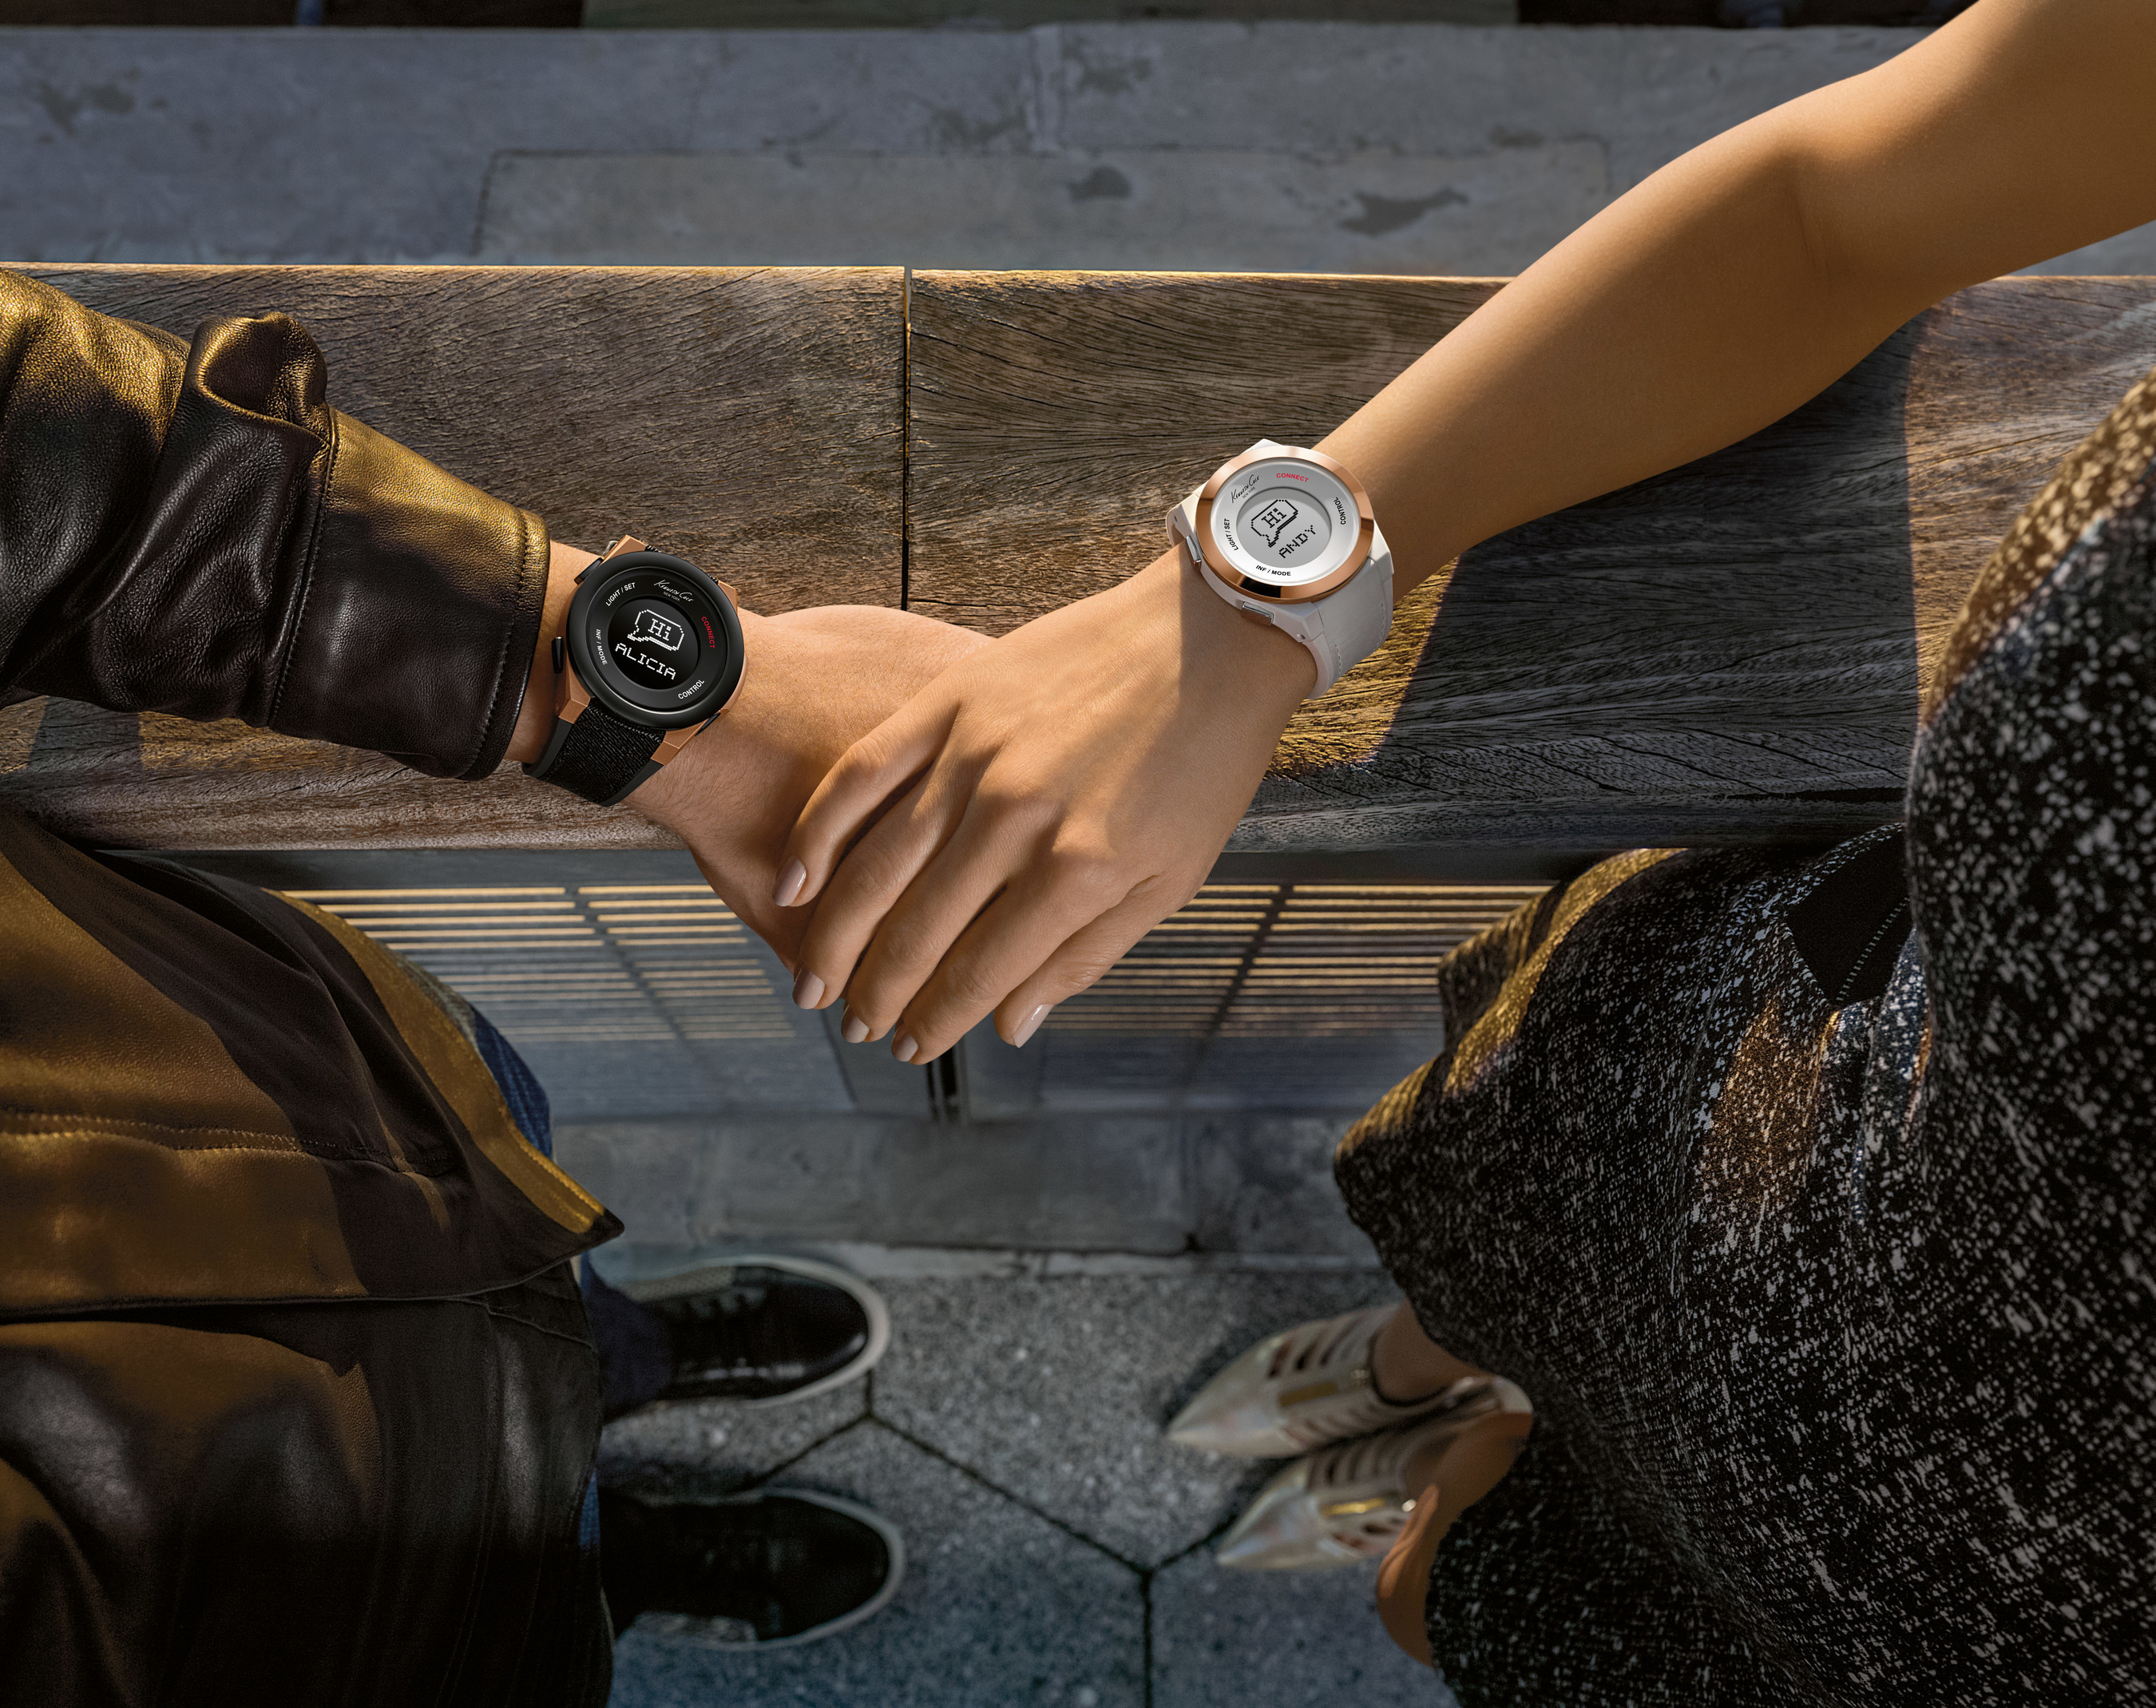 Kenneth Cole lance la montre de mode intelligente Kenneth Cole Connect™